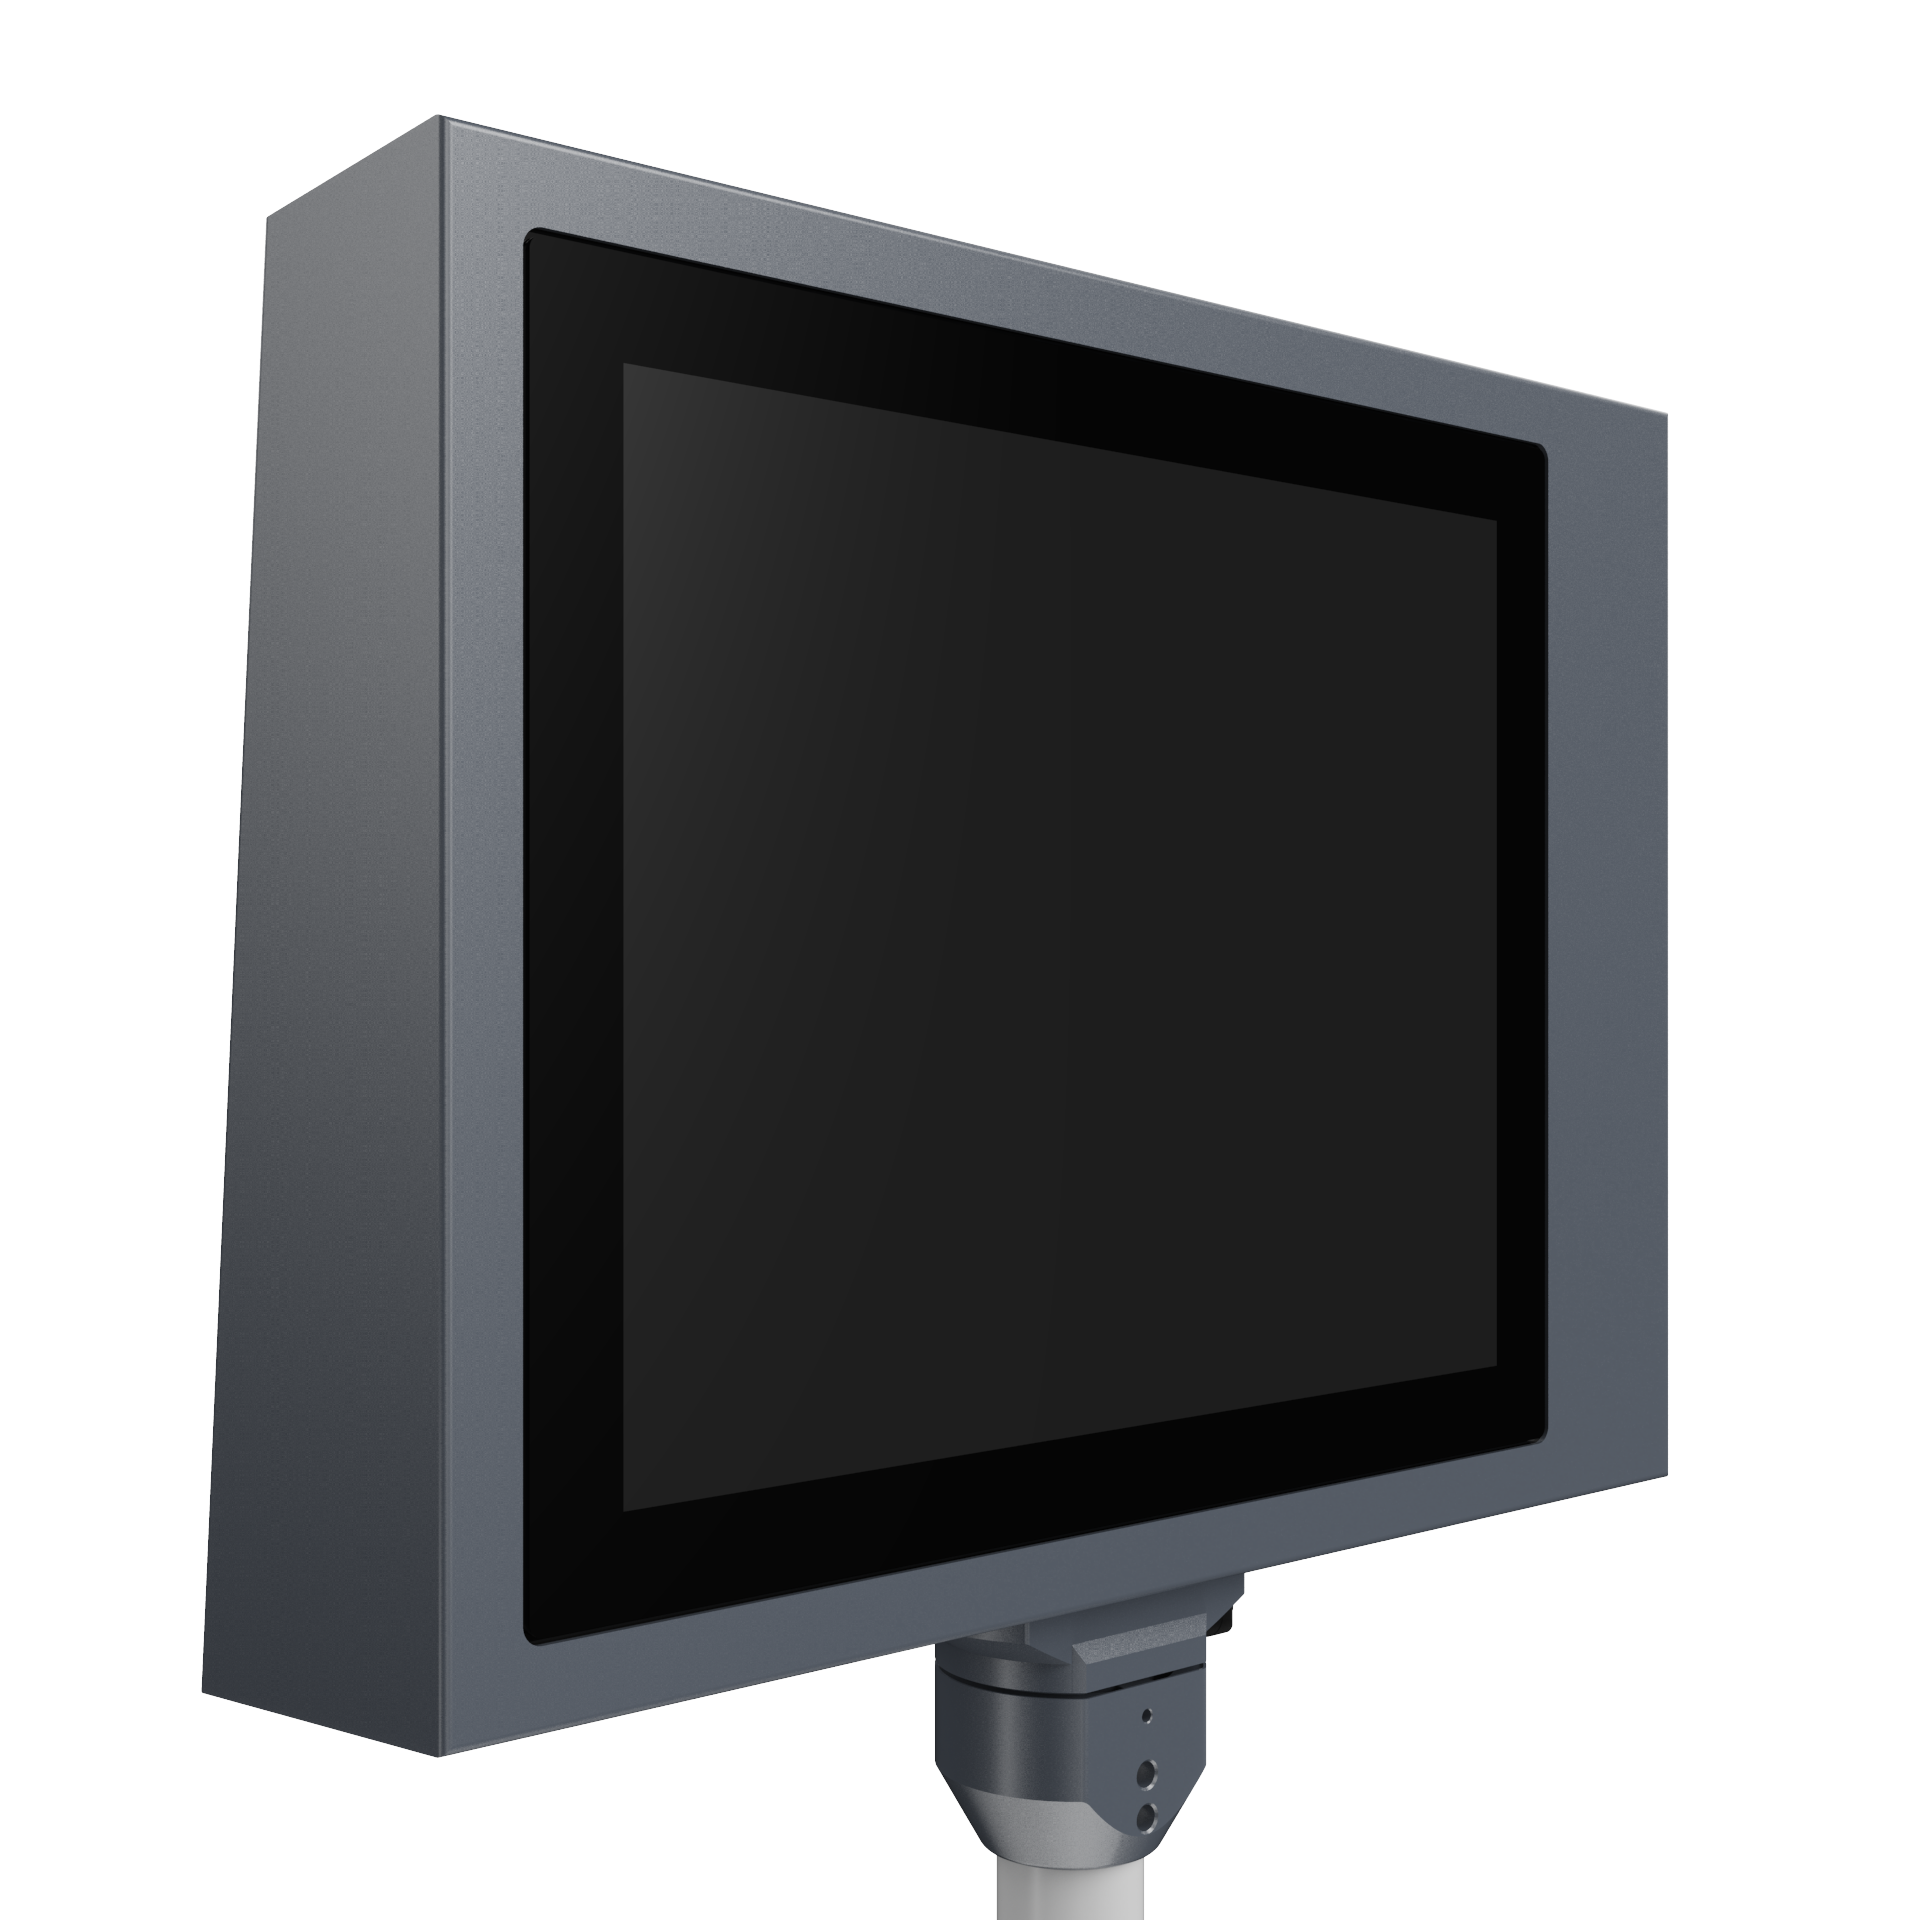 19-Zoll Touchpanel IP65 gepulvert